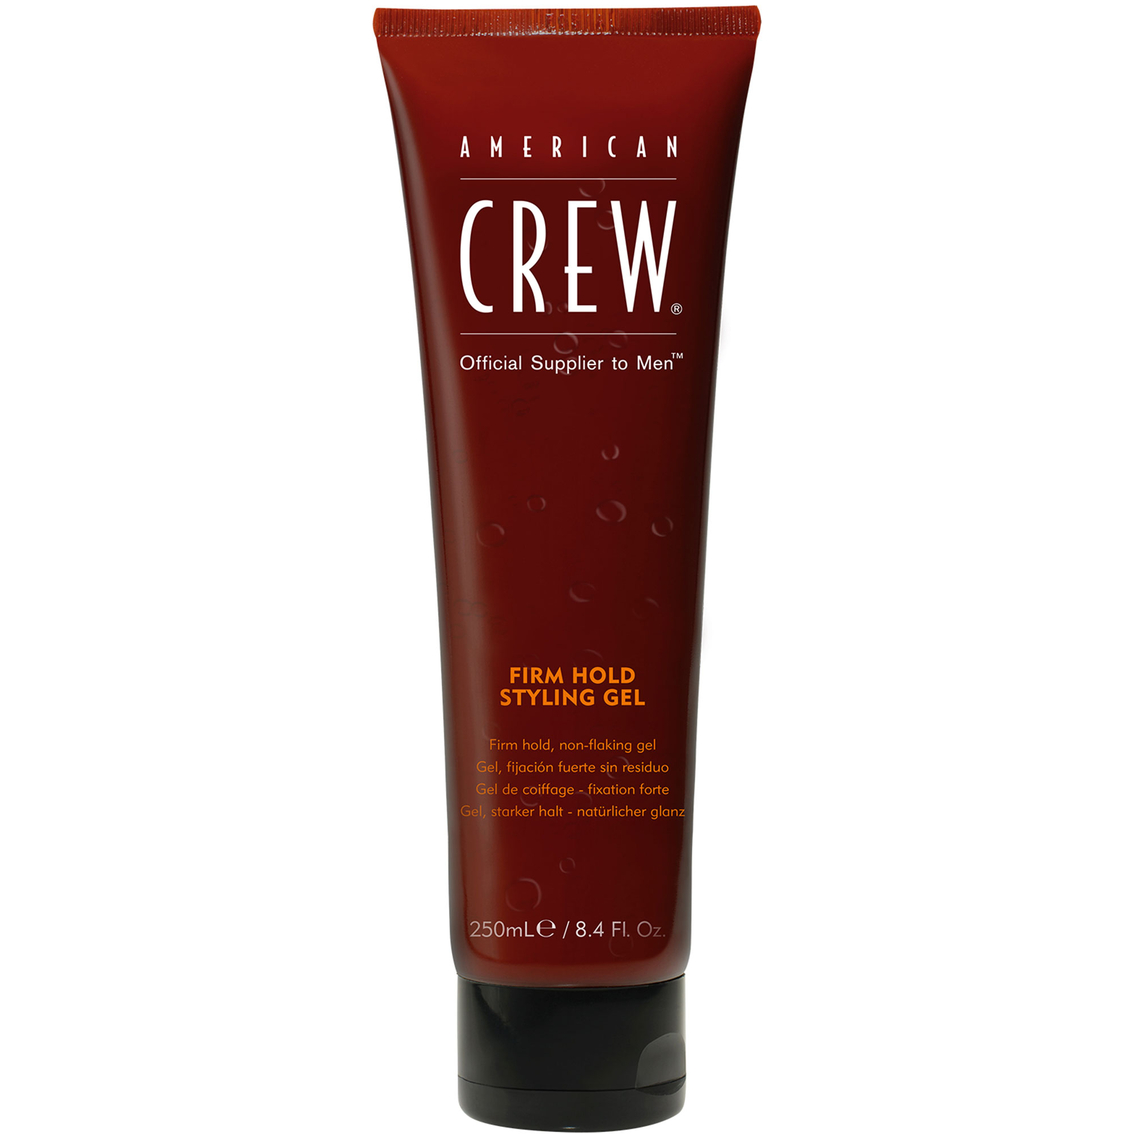 American Crew Firm Hold Styling Gel Body Amp Hair Care